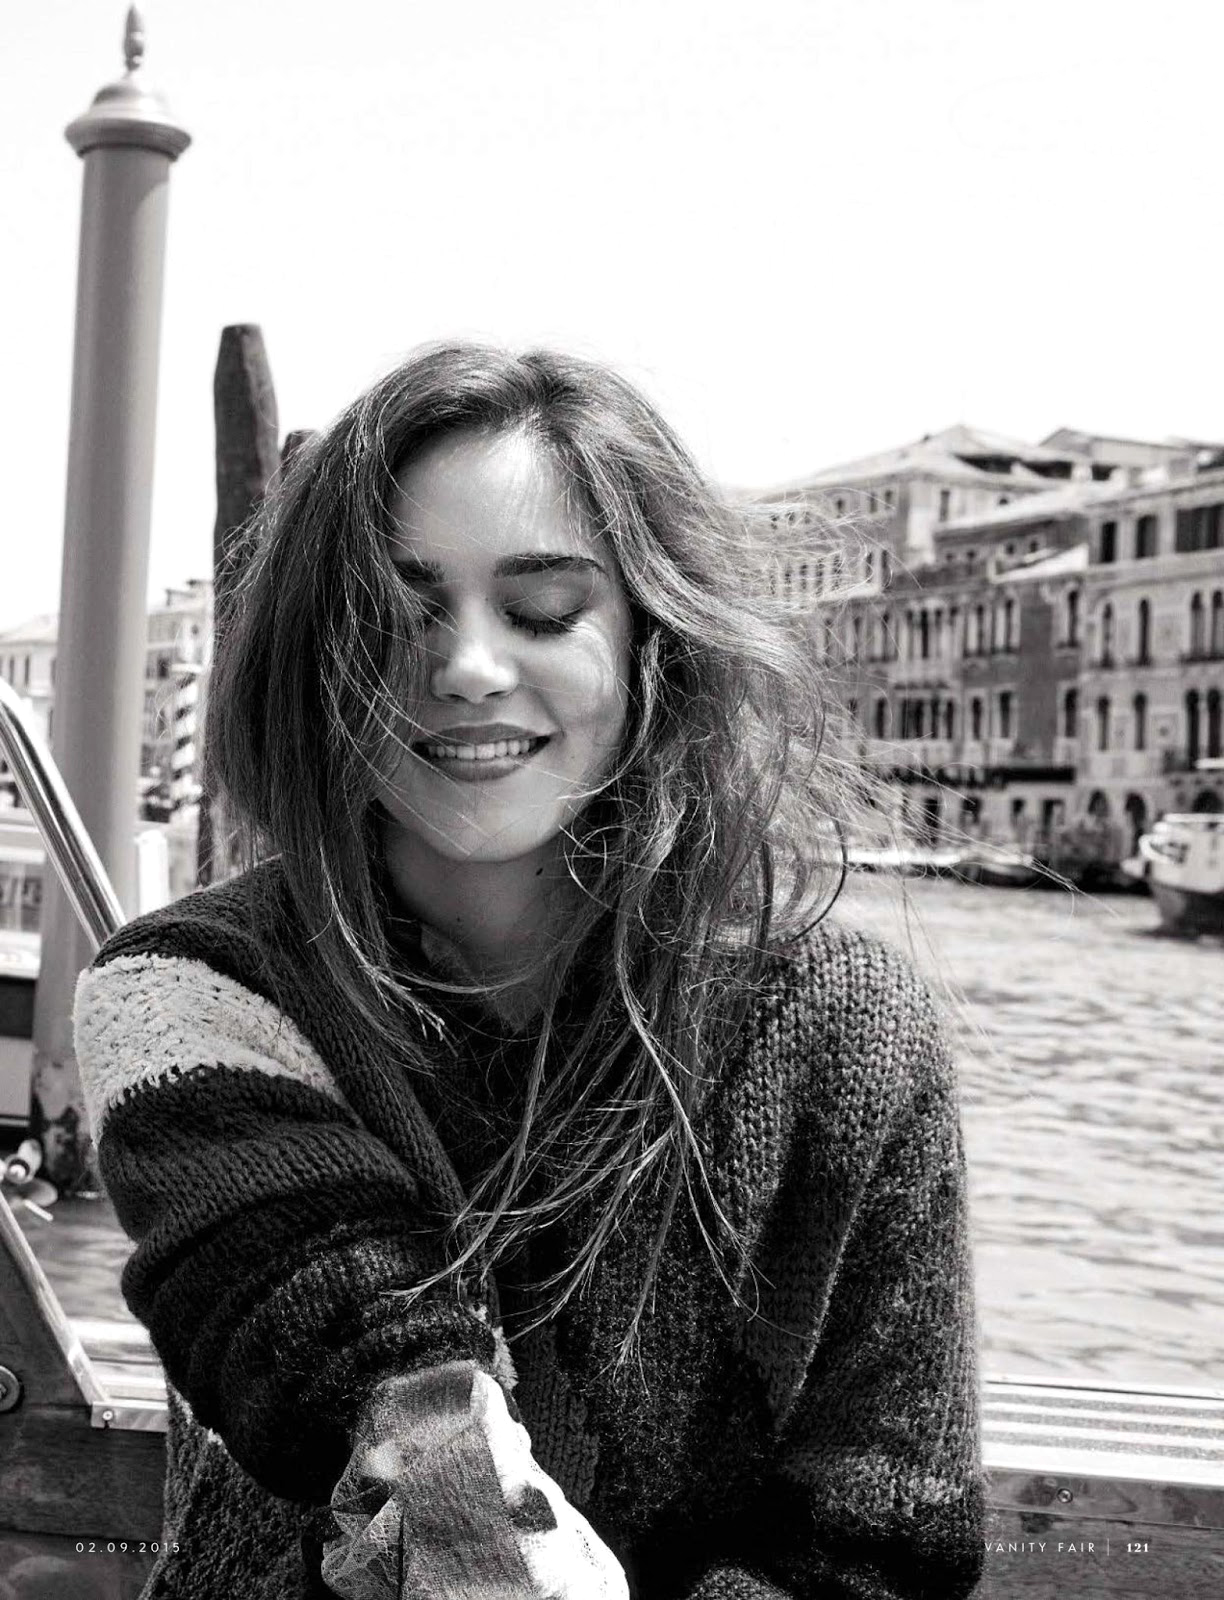 Matilda Lutz in La ricerca della Felicita / Vanity Fair Italia September 2015 (photography: Pamela Hanson) via www.fashionedbylove.co.uk british fashion blog